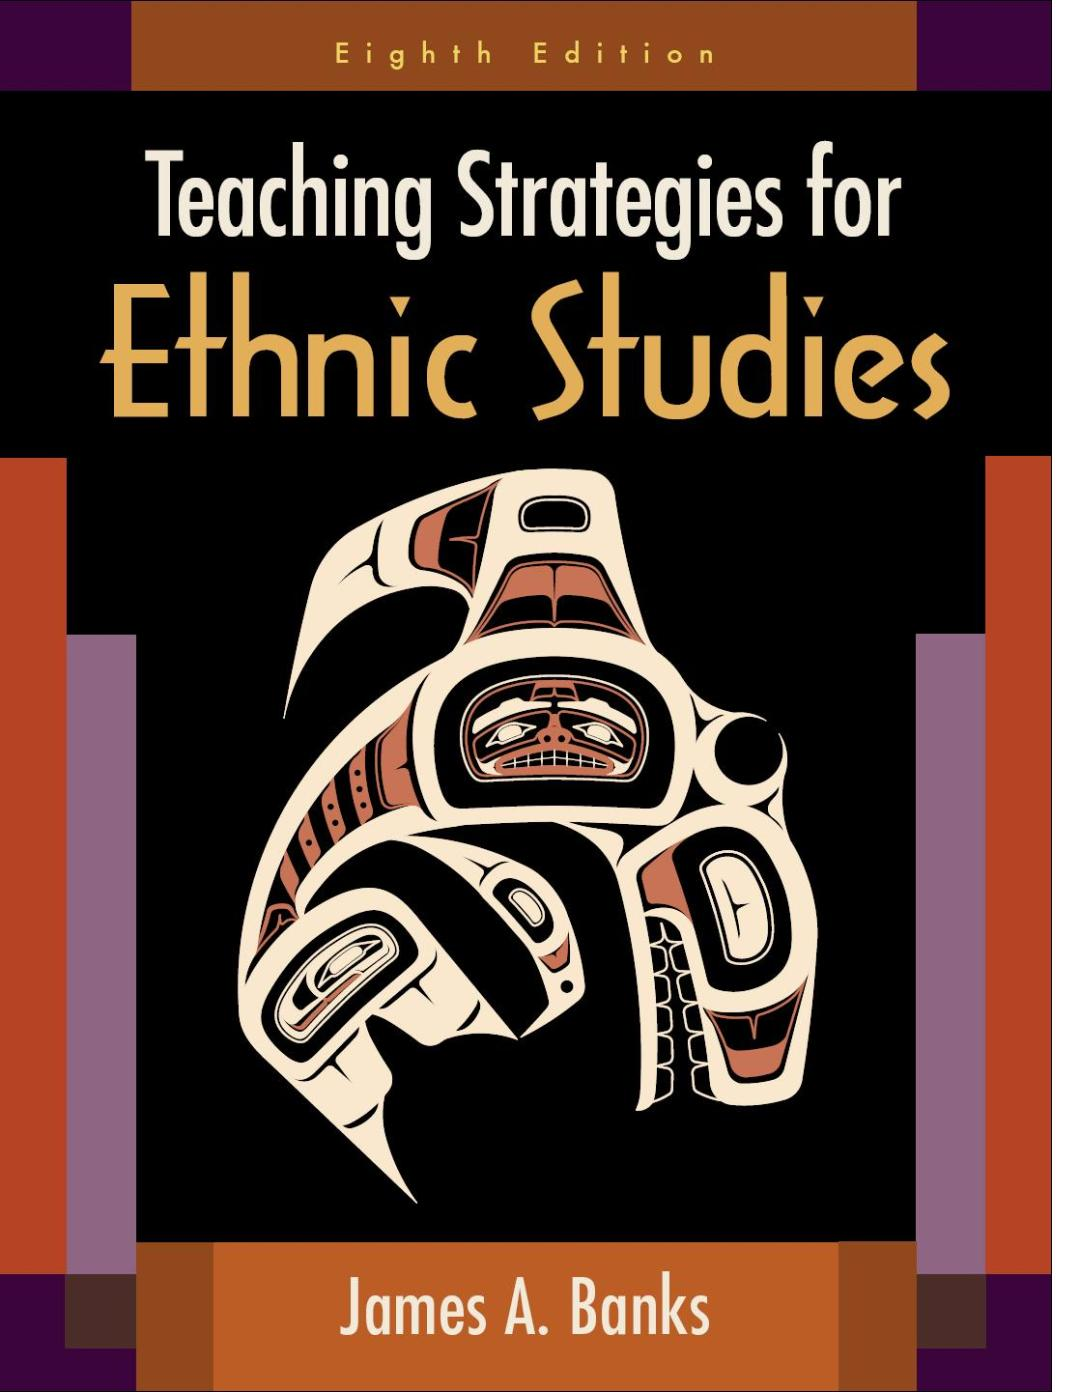 teaching20strategies20for20ethnic20studies